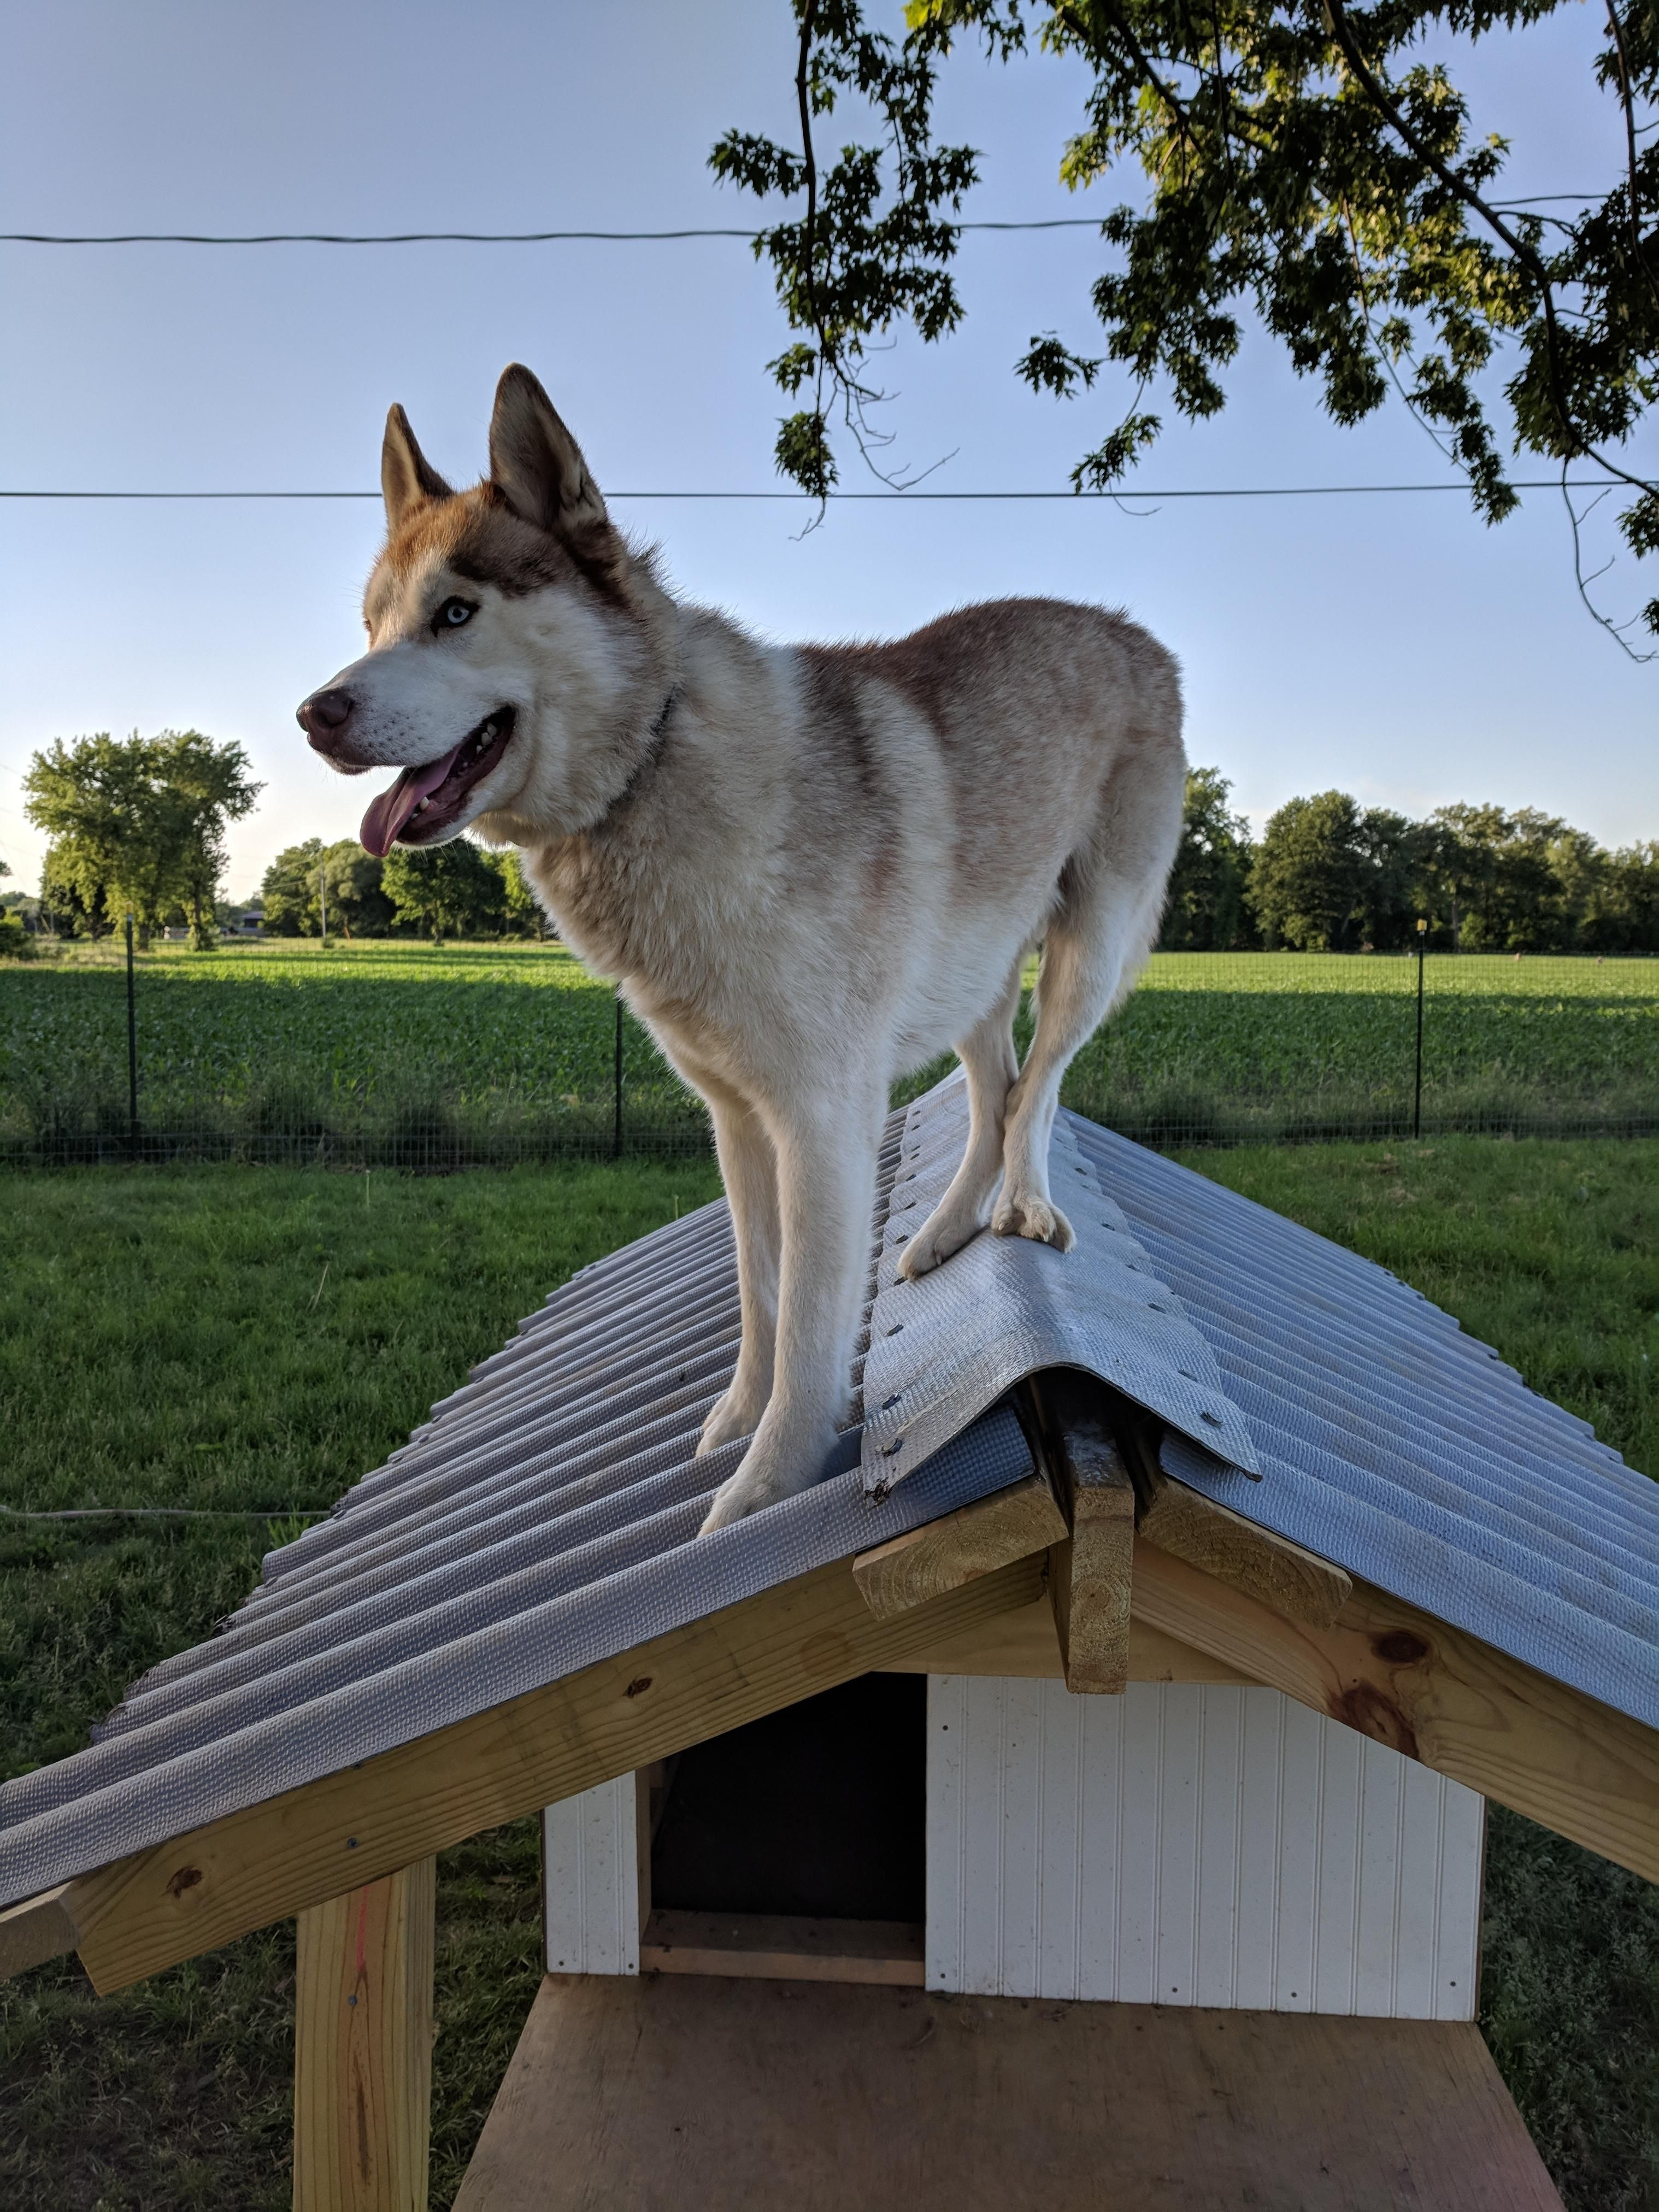 Thank You For Building Me A Dog House Https Ift Tt 2n1vamp